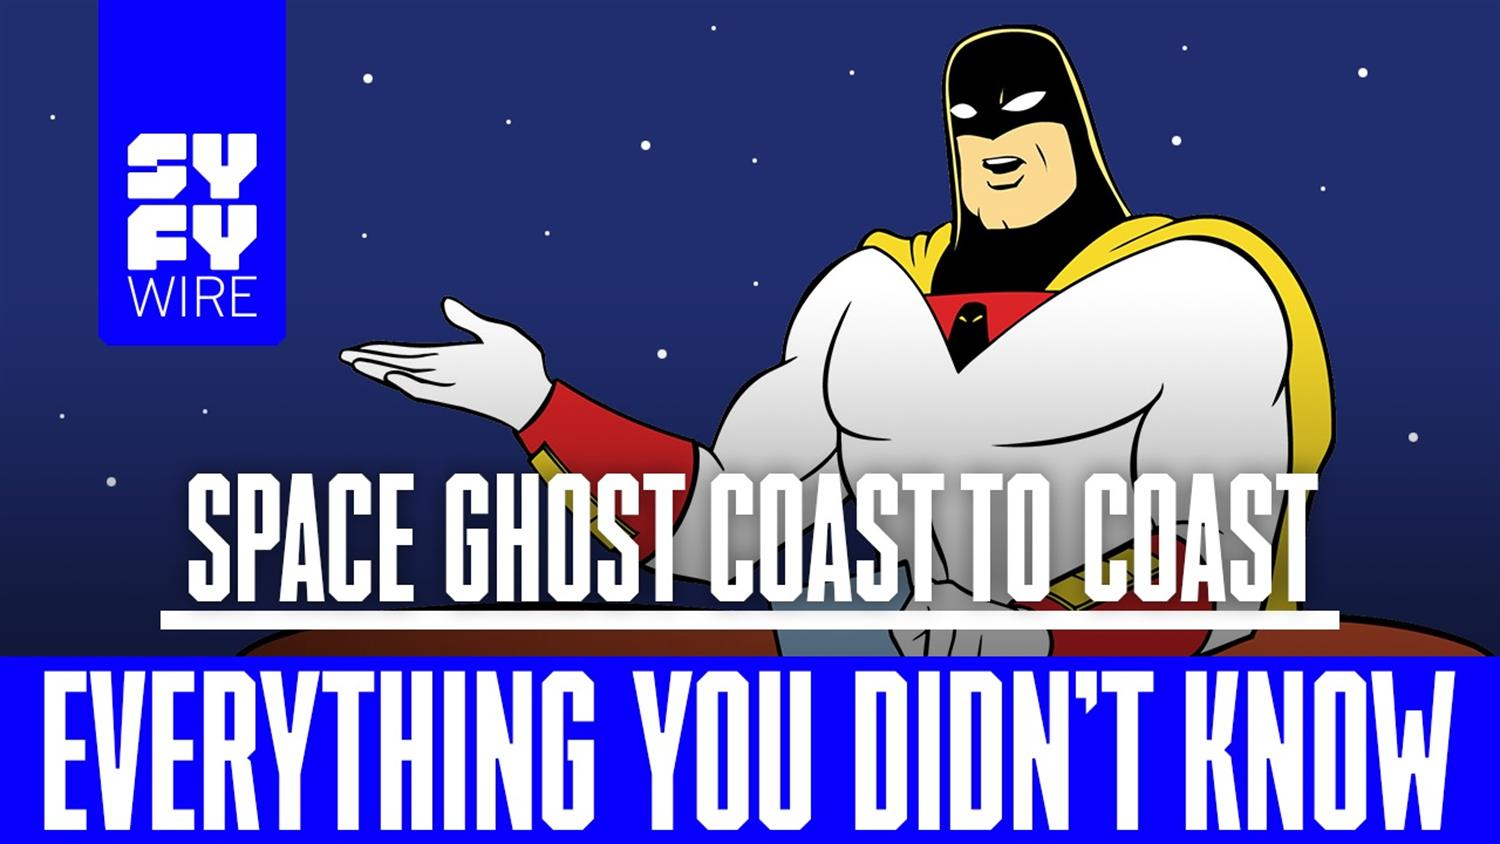 Space Ghost Coast to Coast: Everything You Didn't Know